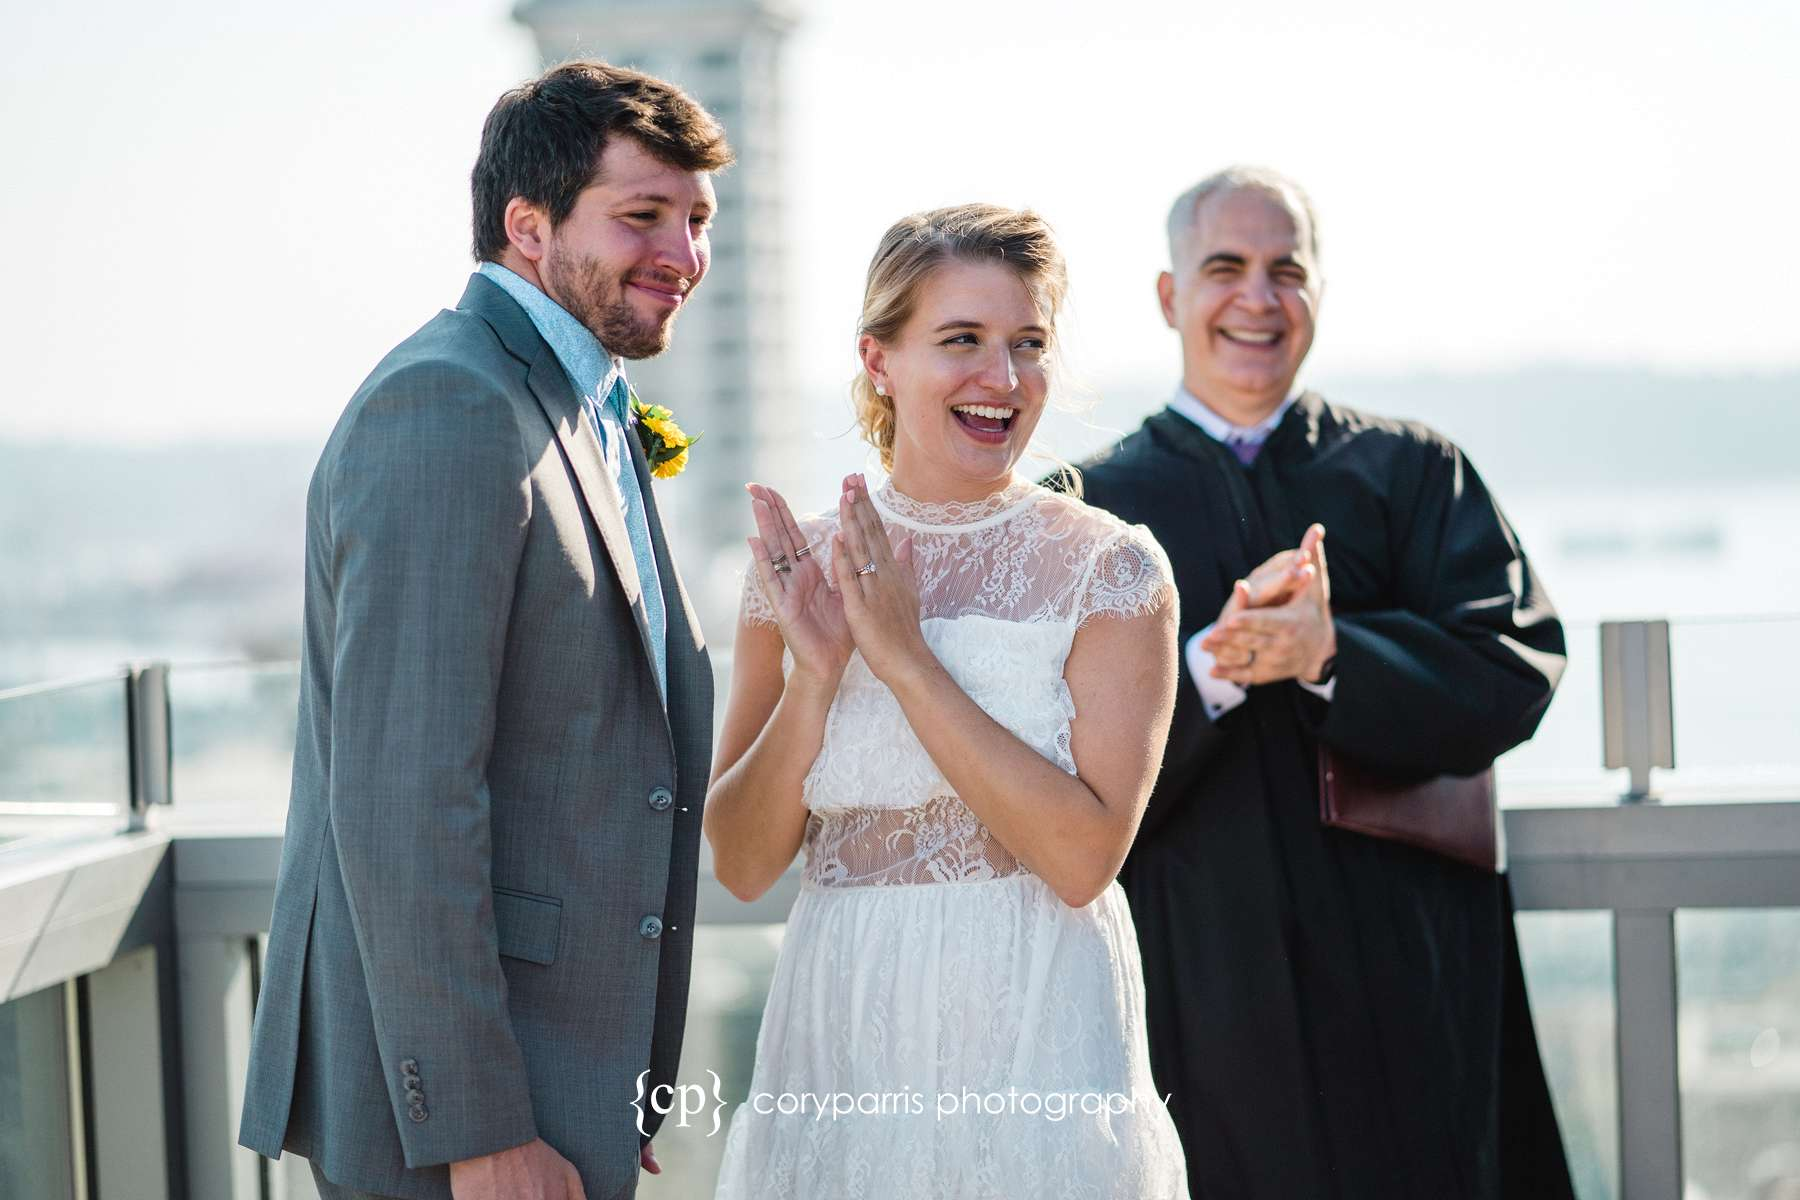 215-Seattle-Elopement-Courthouse.jpg